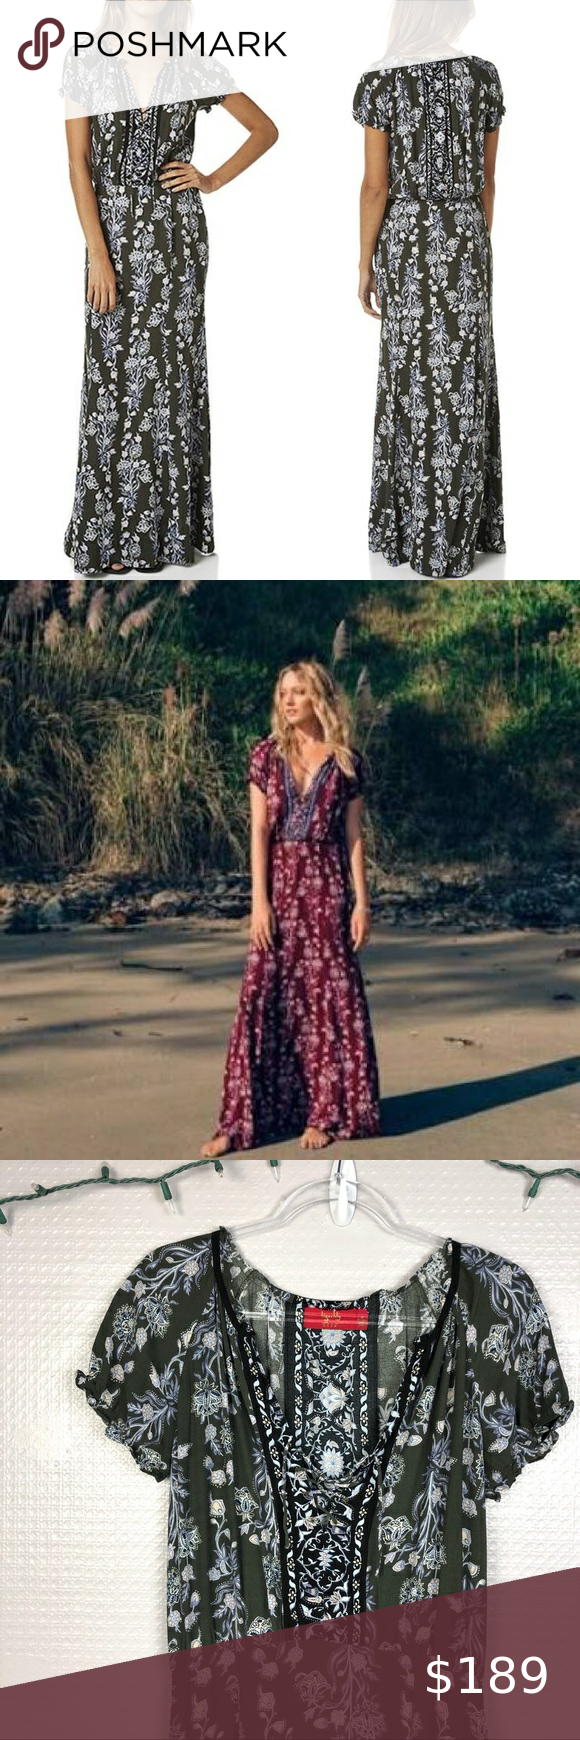 Tigerlily Carriacou Maxi Dress In Olive 6 Paisley Print Maxi Dress Leopard Print Maxi Dress Tigerlily Maxi Dress